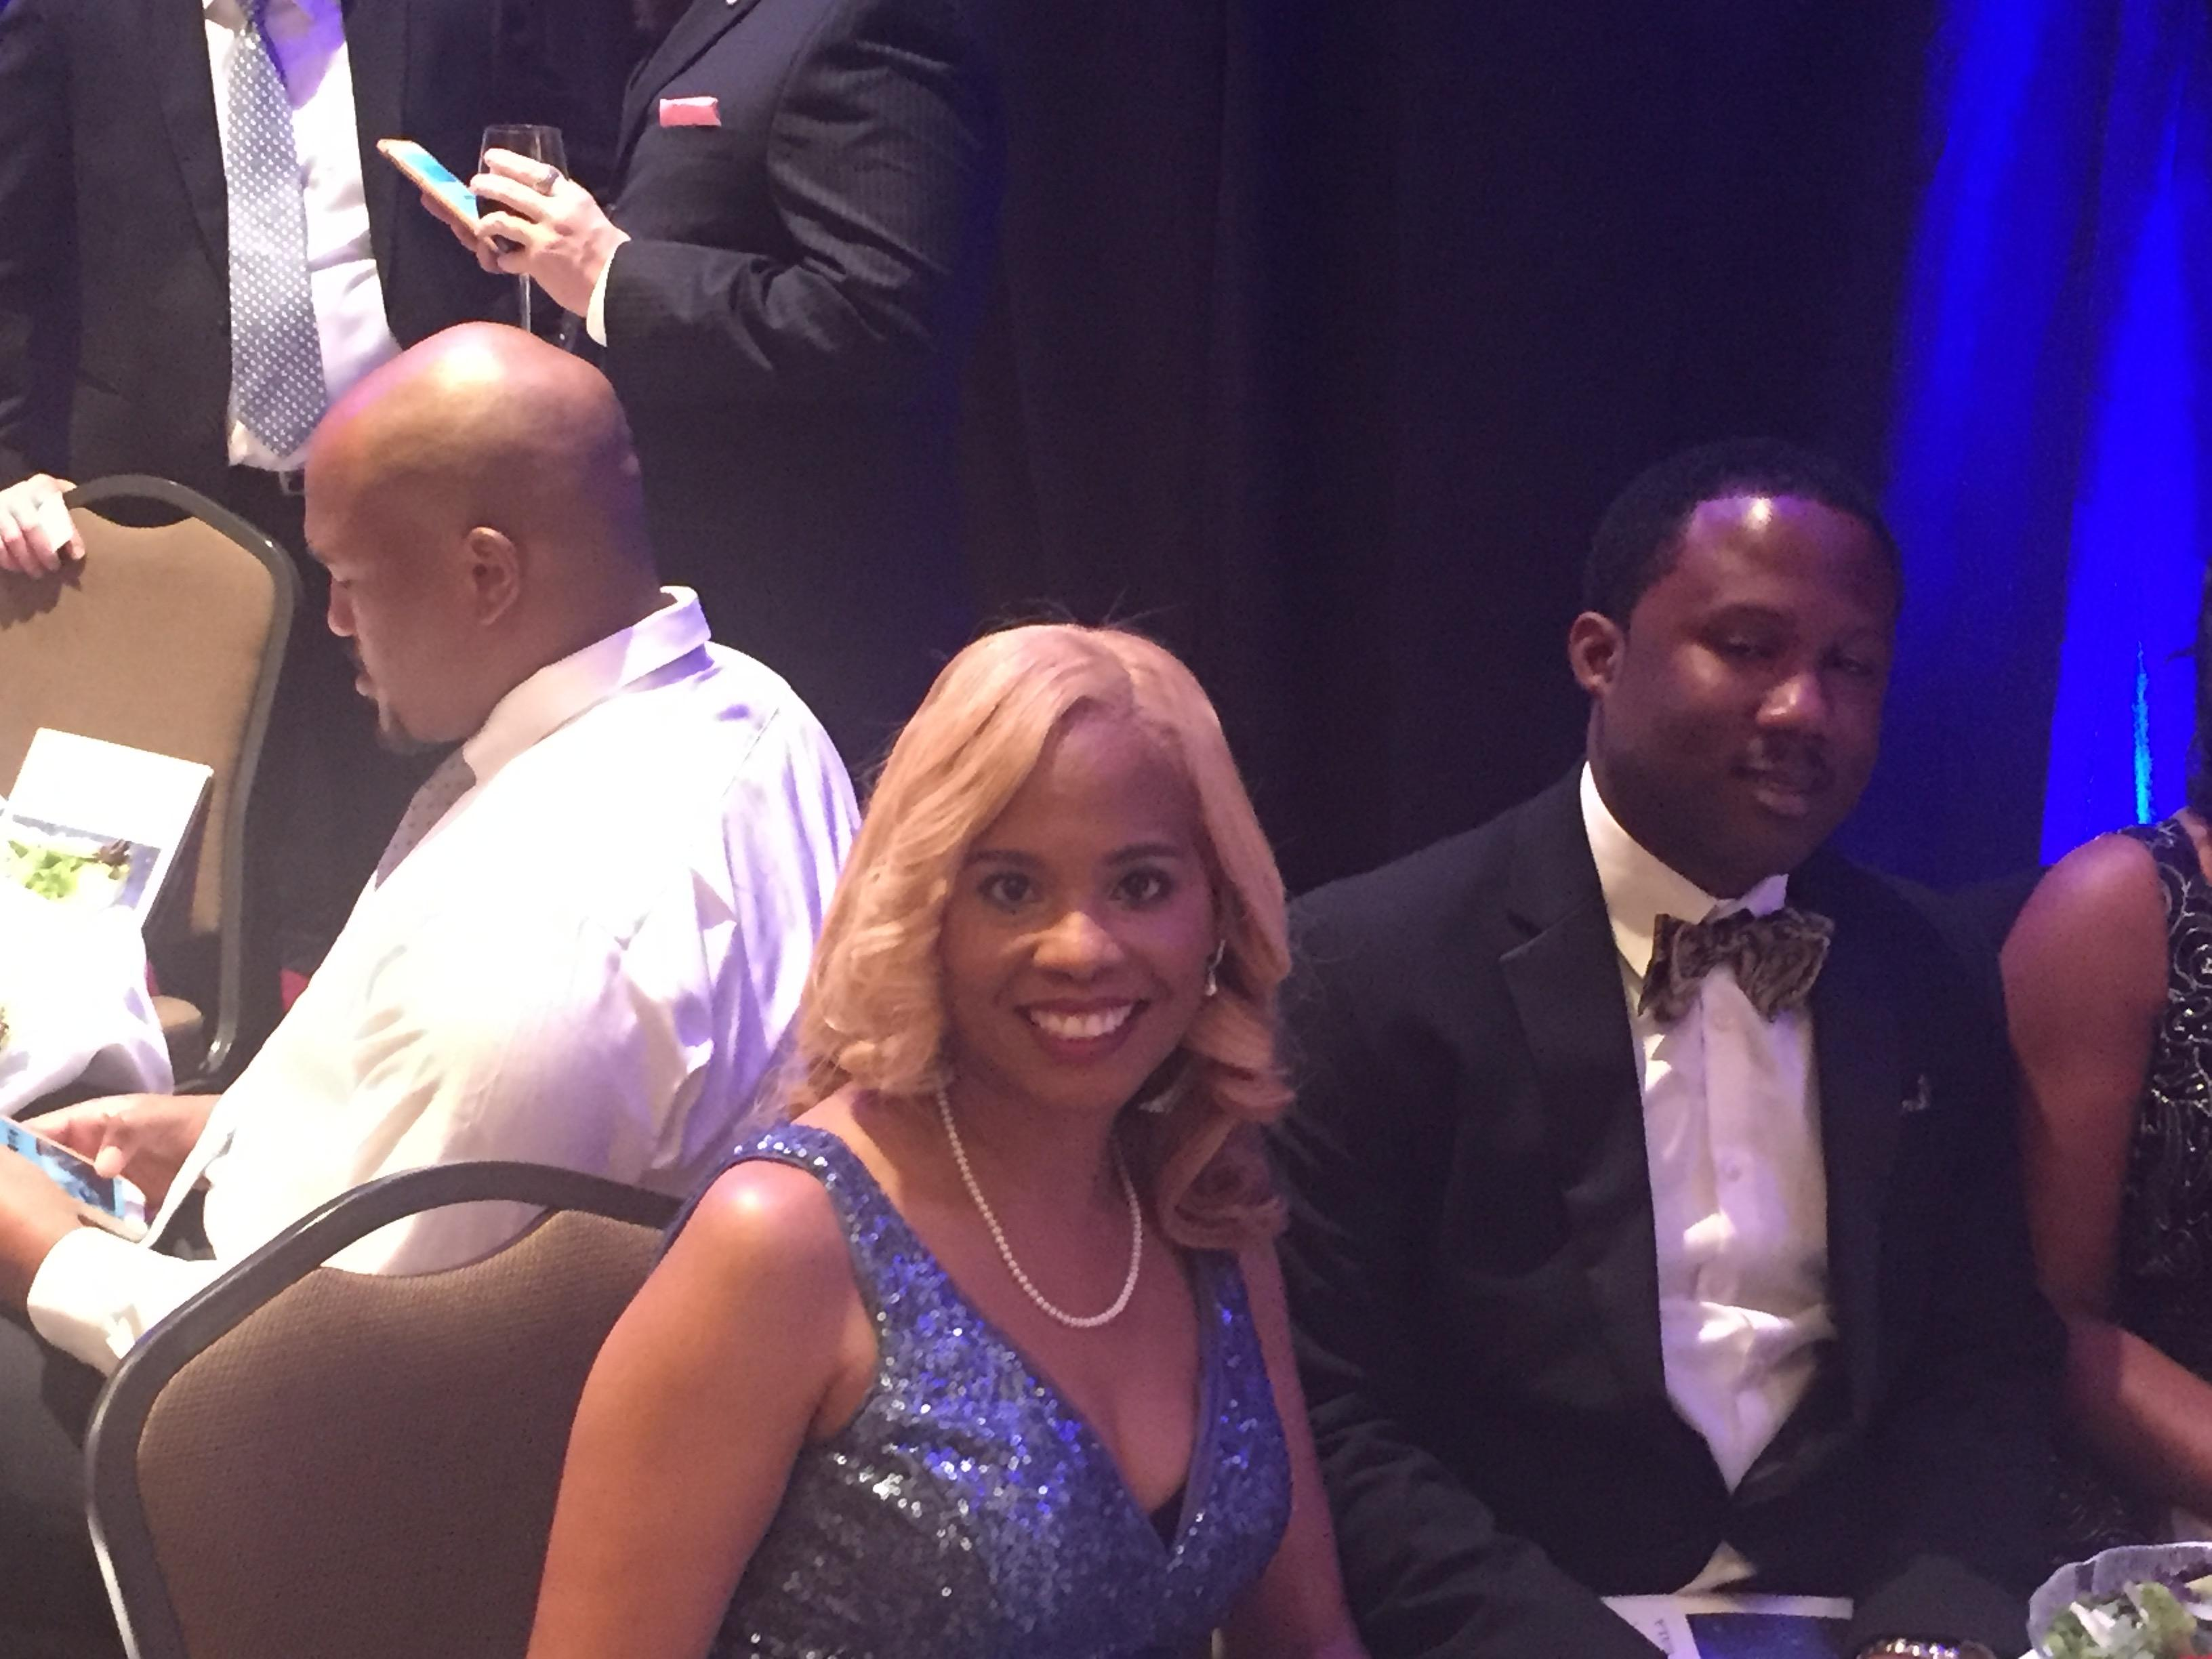 Photo of Principal Penn sitting next to her brother-in-law at the gala honoring educators from across the state